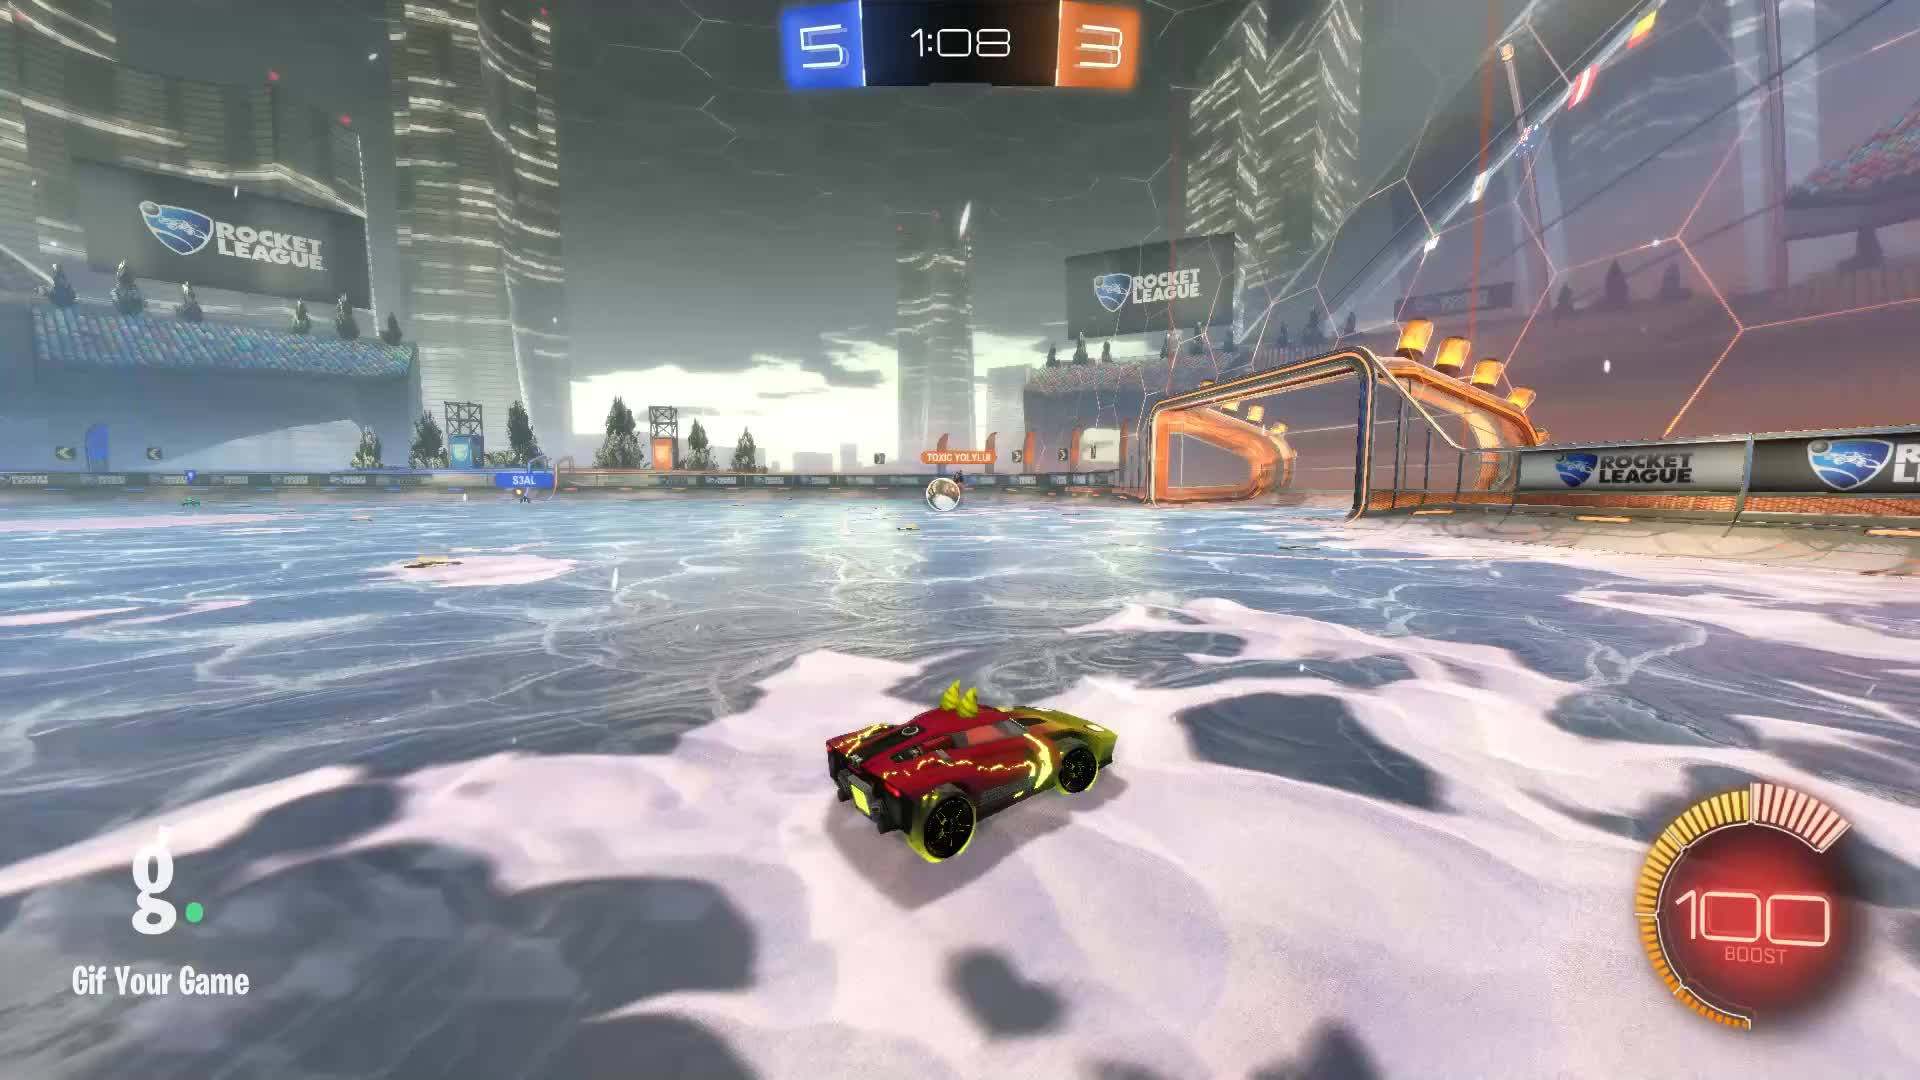 Gif Your Game, GifYourGame, Goal, Rocket League, RocketLeague, SeñorMañoso, Goal 9: SeñorMañoso GIFs